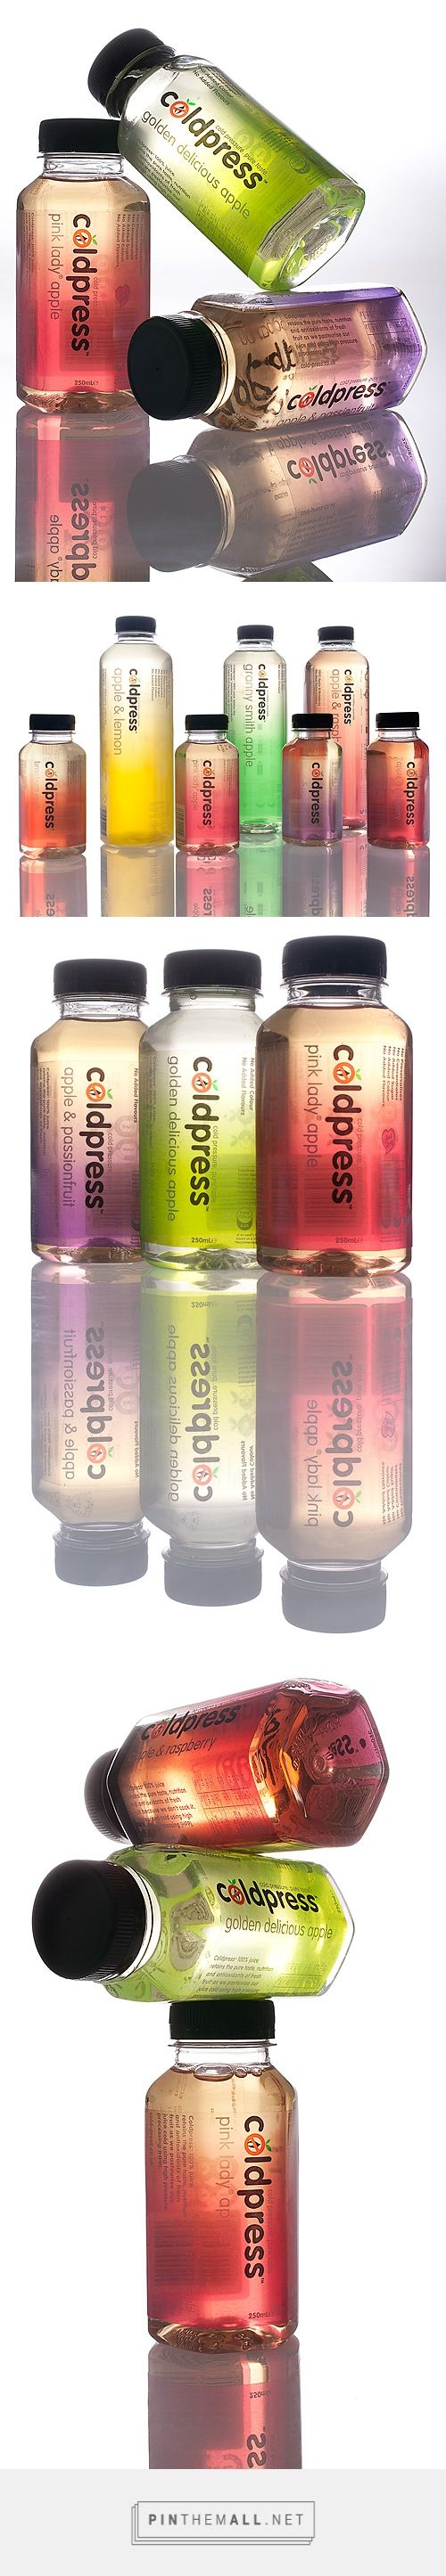 Coldpress juice packaging Design by Pidgeon curated by Packaging Diva PD.  This juice packaging makes the product look very tasty. Especially the ombre color effect PD